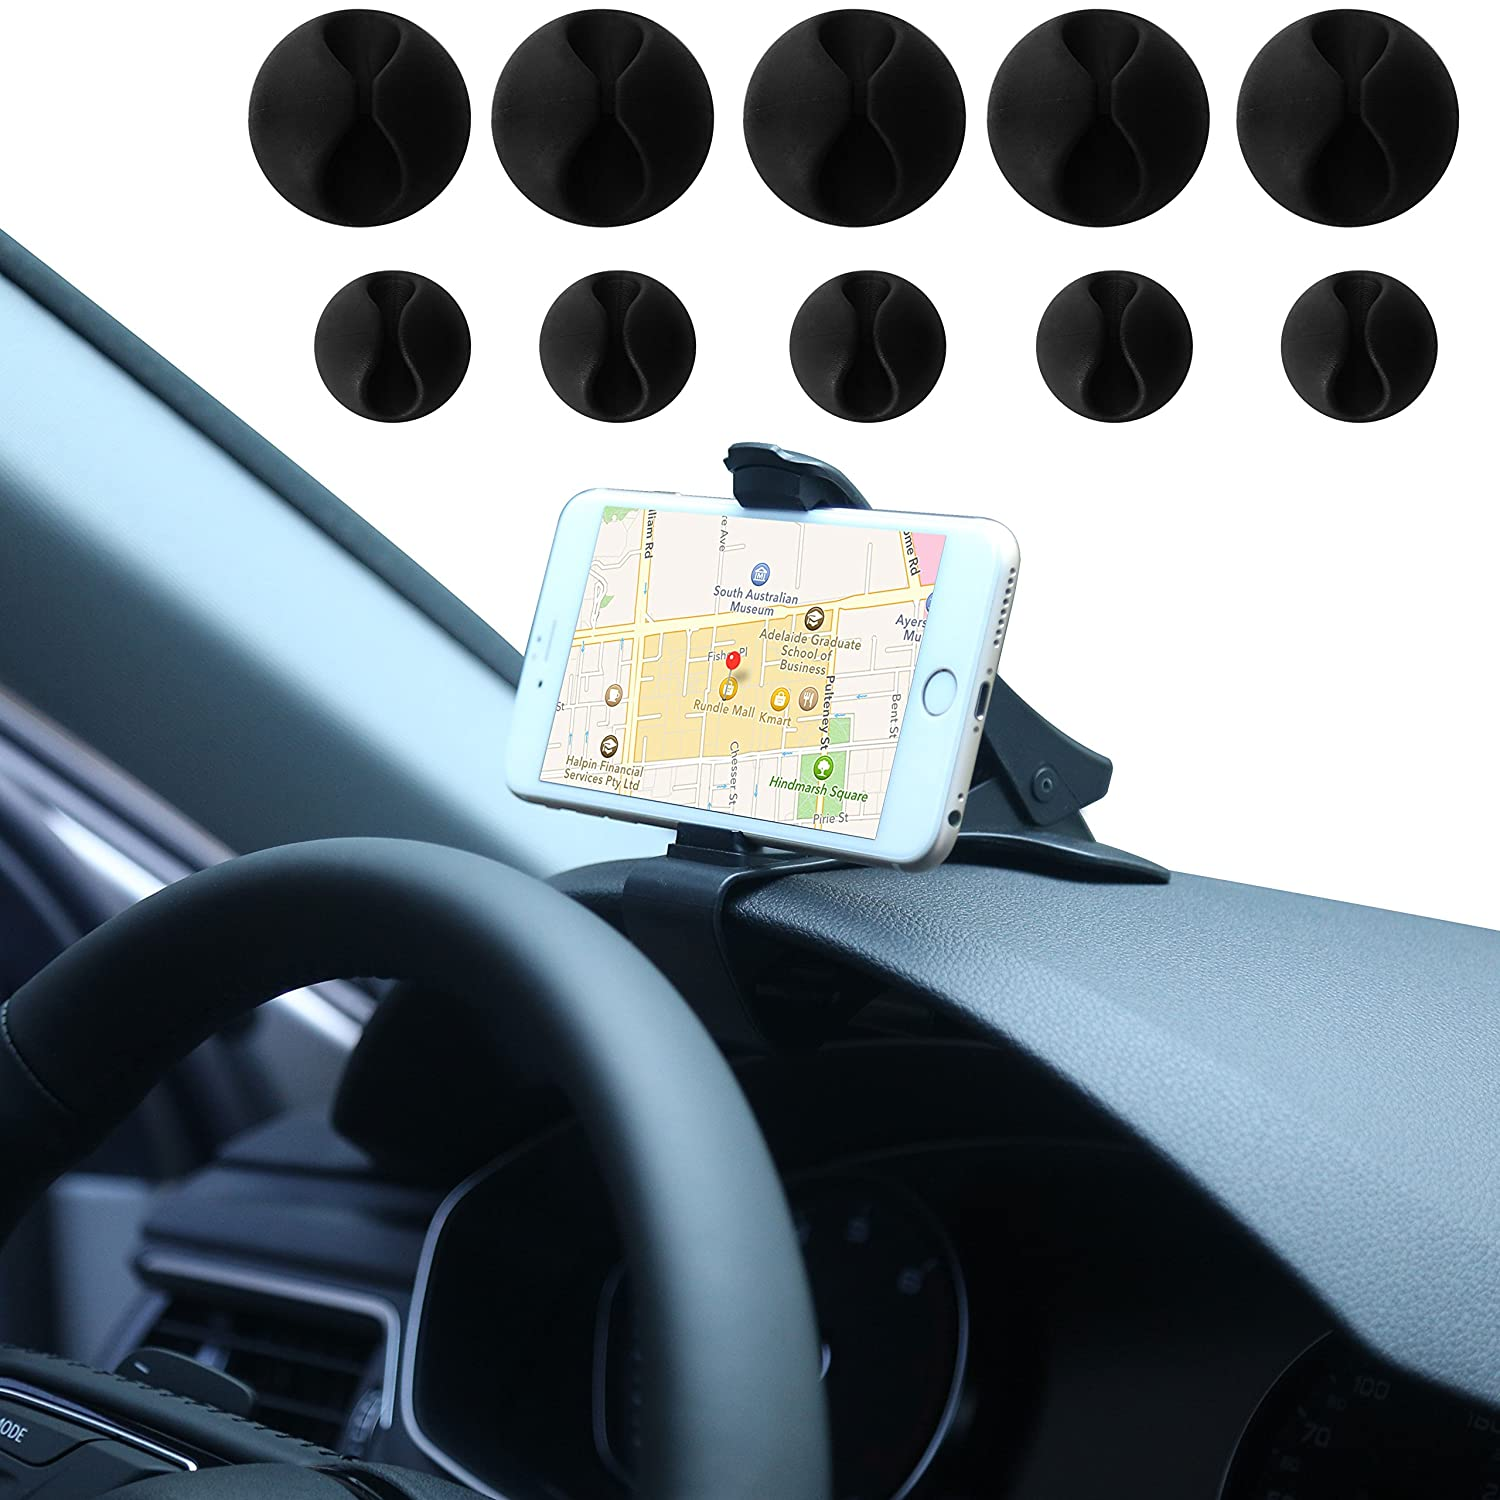 Black HSPSDASBLK1 Truck Smartphone Bracket Honsky No-Sight-Blocking Secure-Driving Clip-on Quick-Release Auto Cell Phone Mount with 10 Cable Clips Car Dashboard Phone Holder